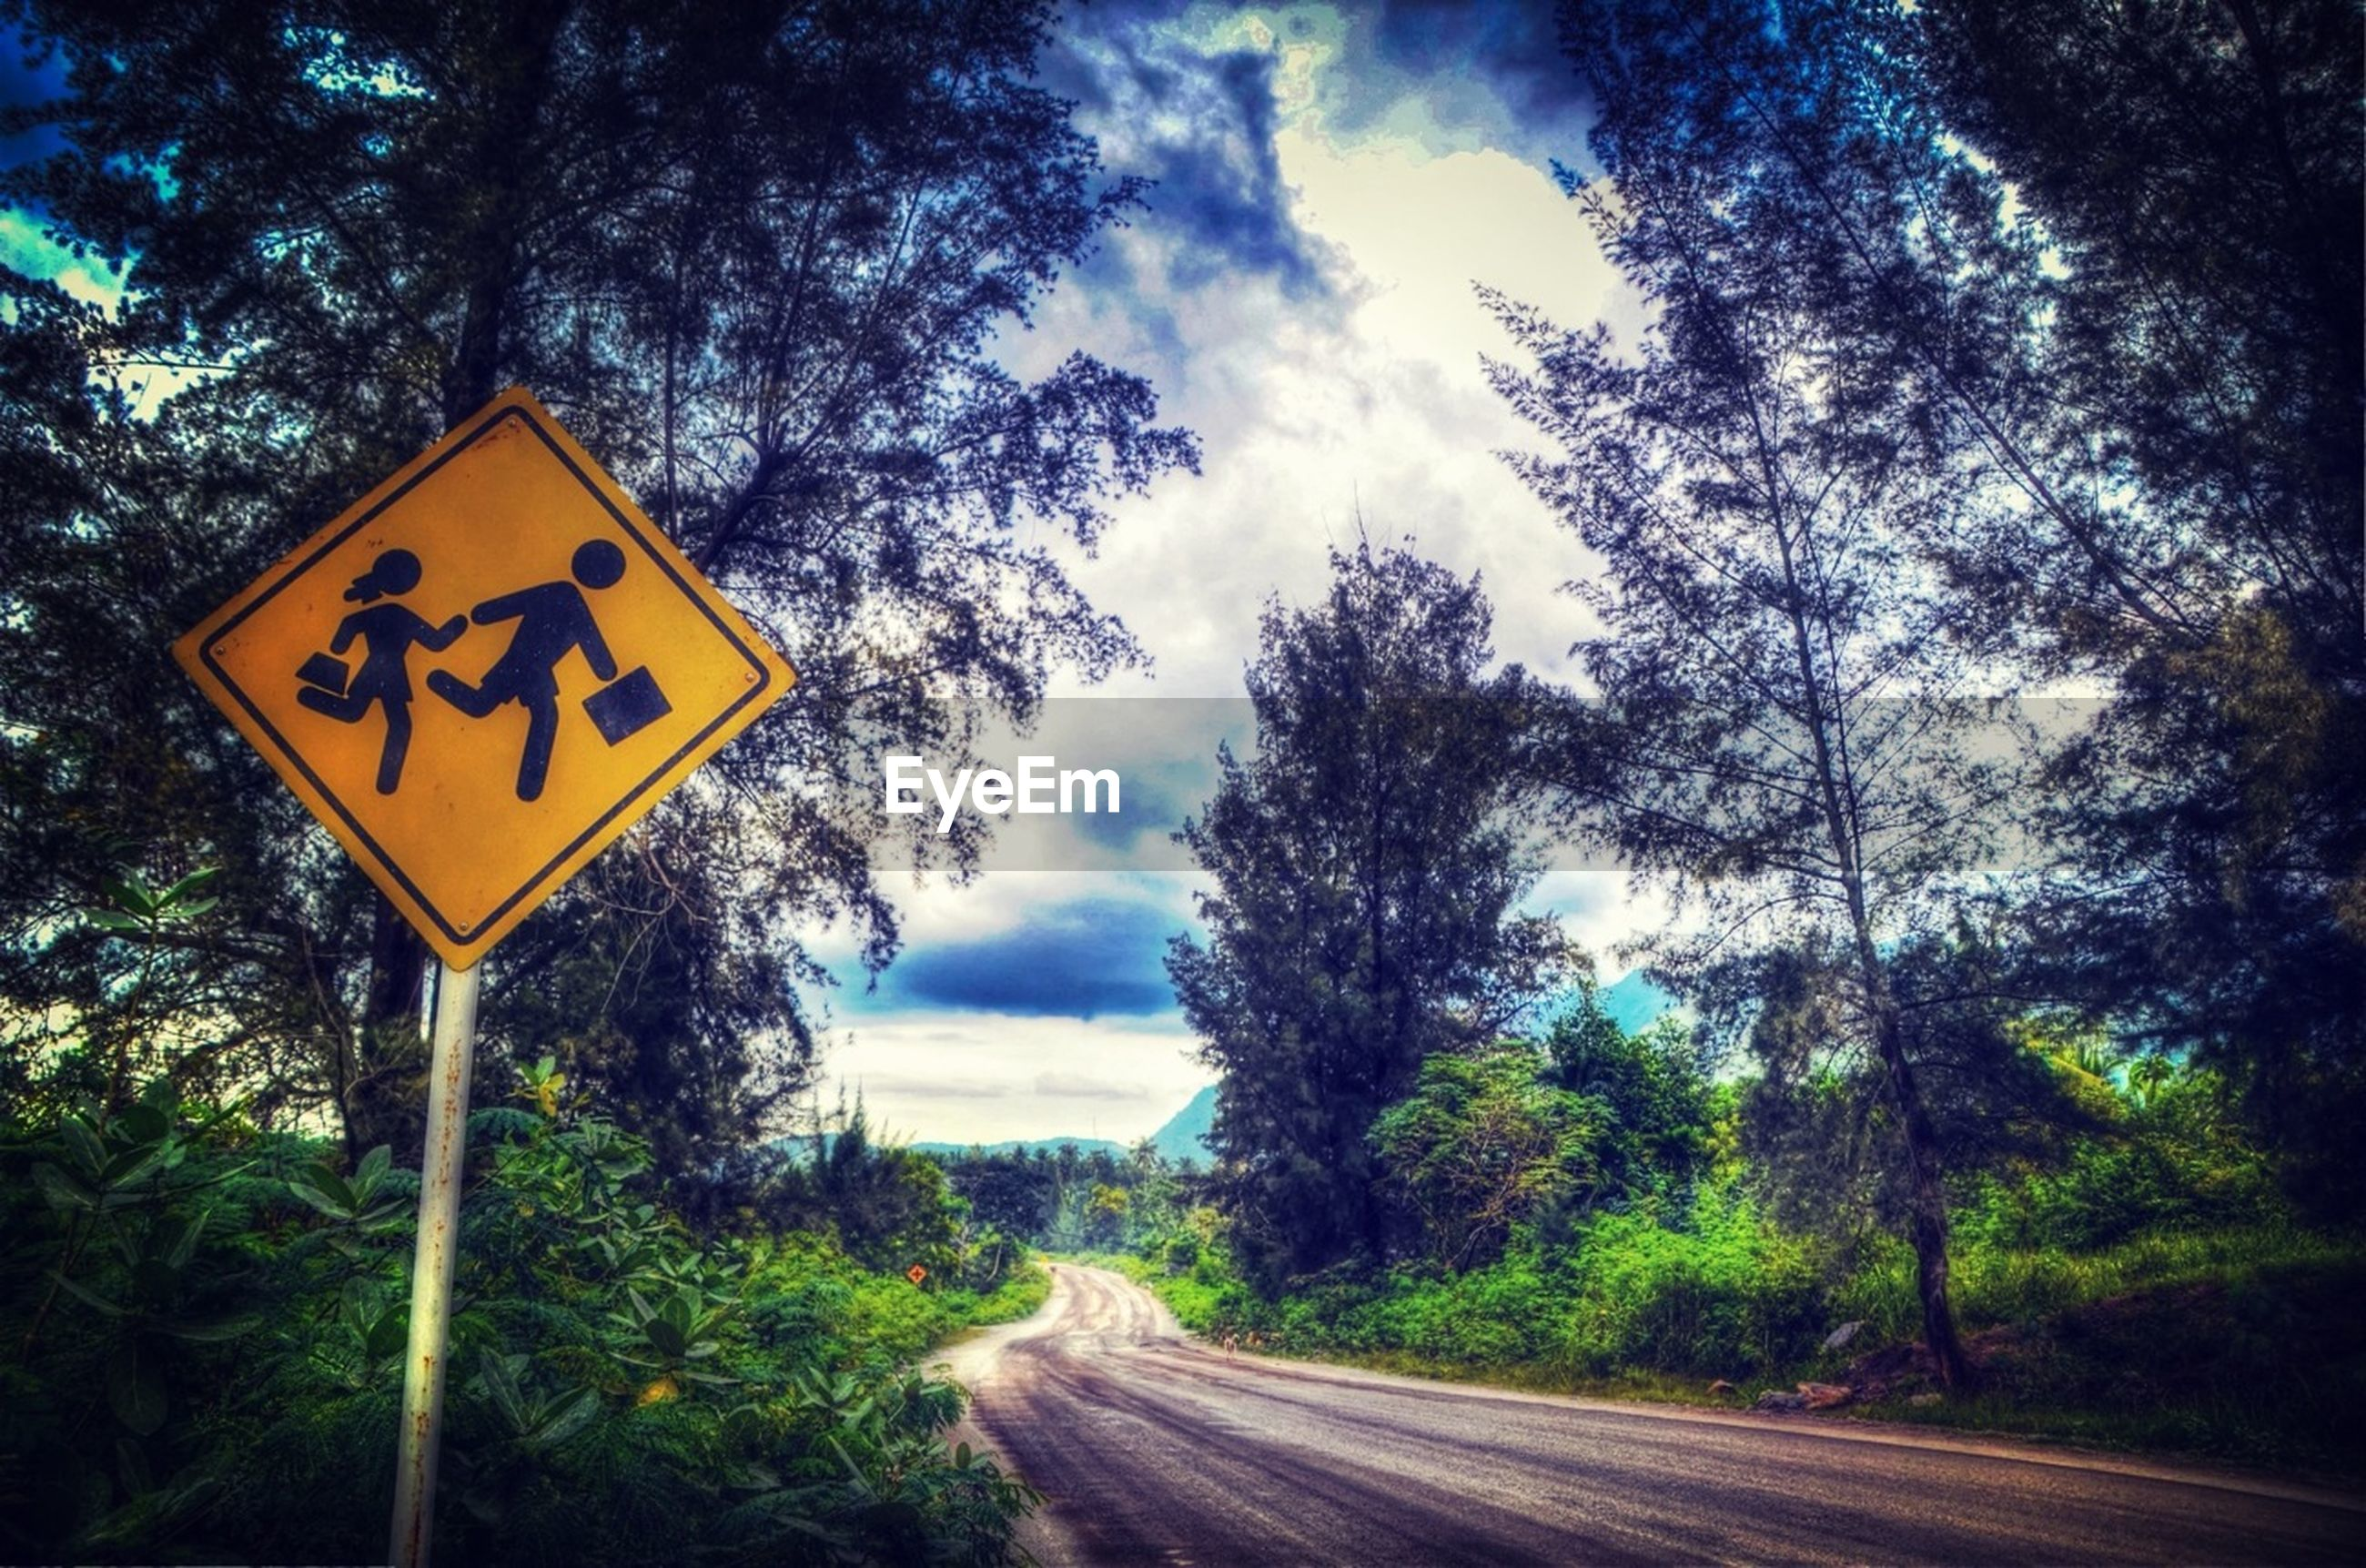 text, tree, communication, road sign, western script, sky, information sign, sign, guidance, road, cloud - sky, the way forward, directional sign, yellow, nature, arrow symbol, warning sign, transportation, direction, information